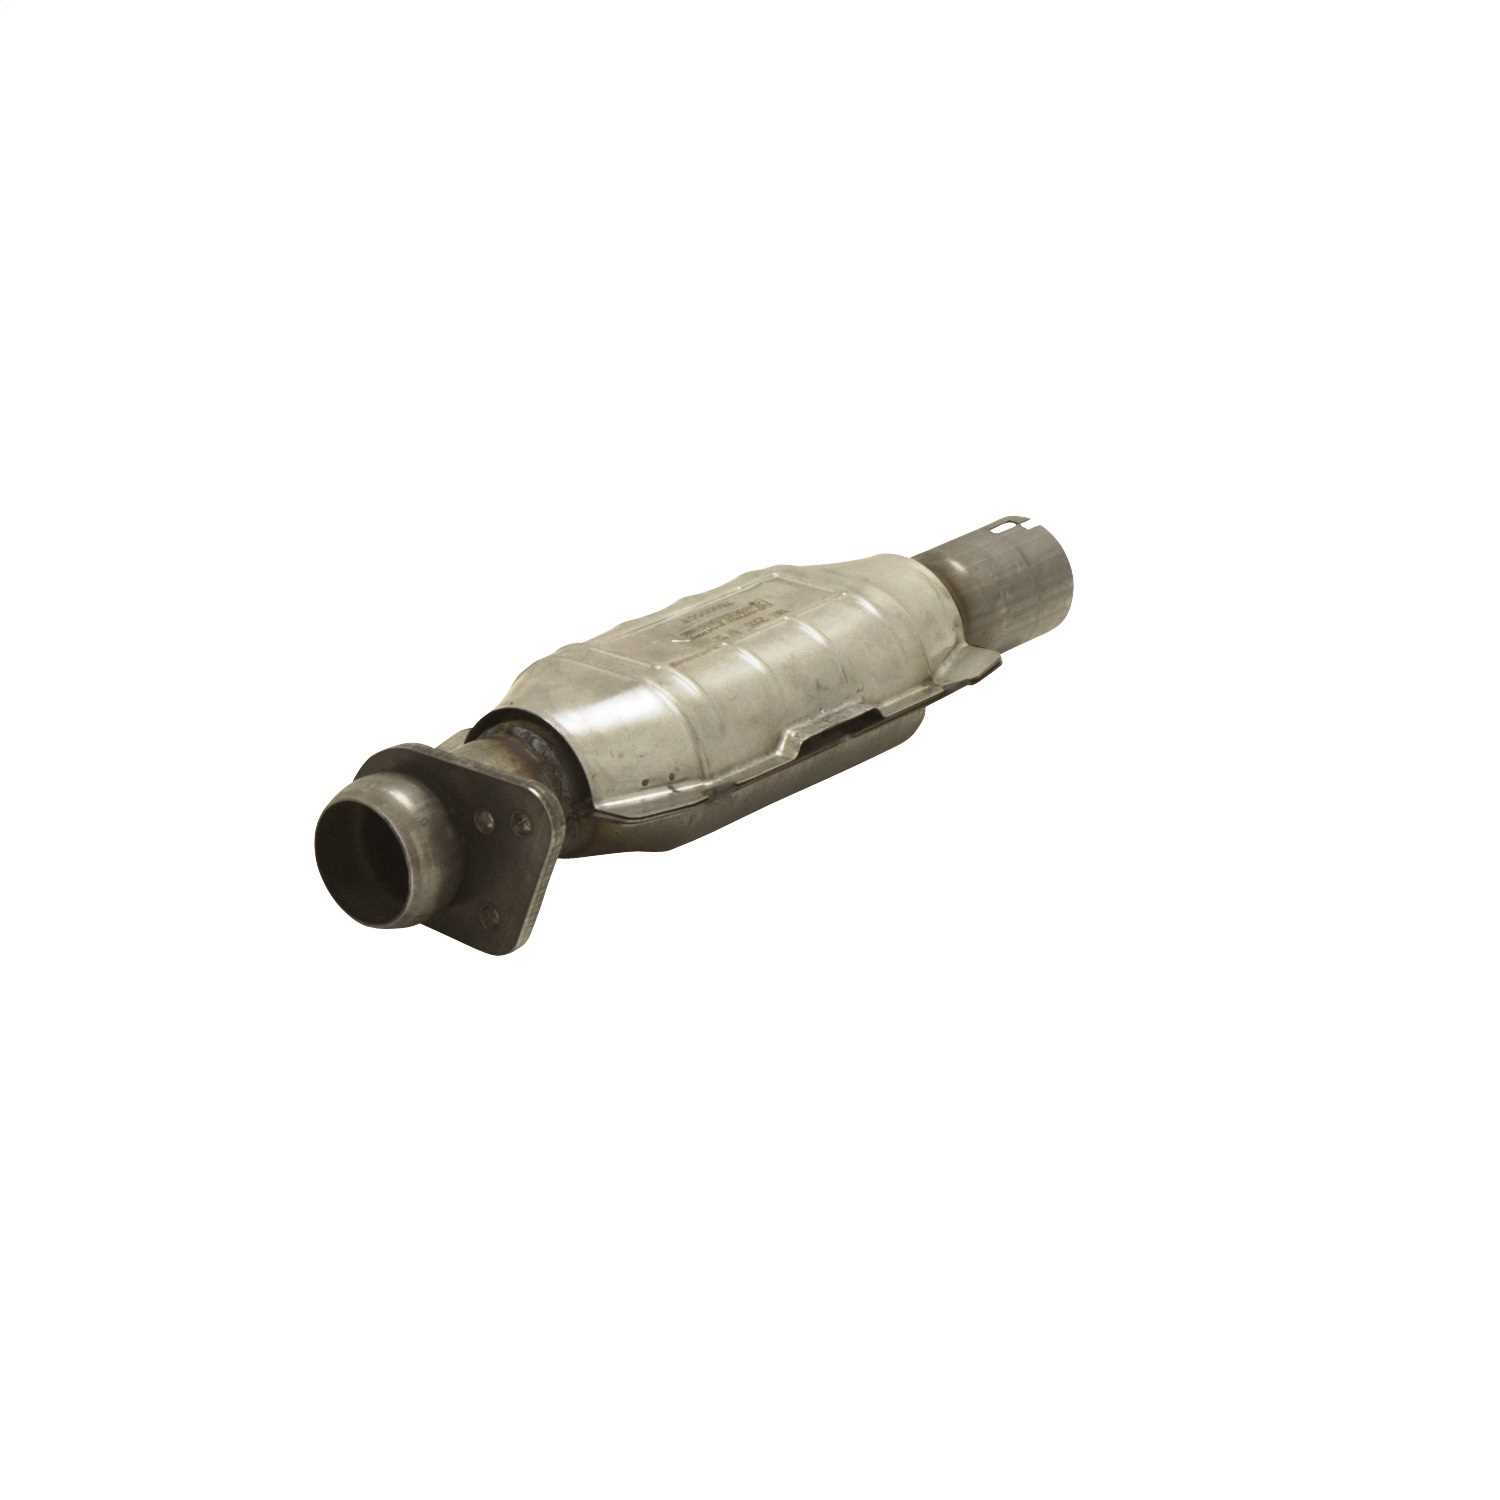 2010003 Flowmaster 49 State Catalytic Converters Direct Fit Catalytic Converter